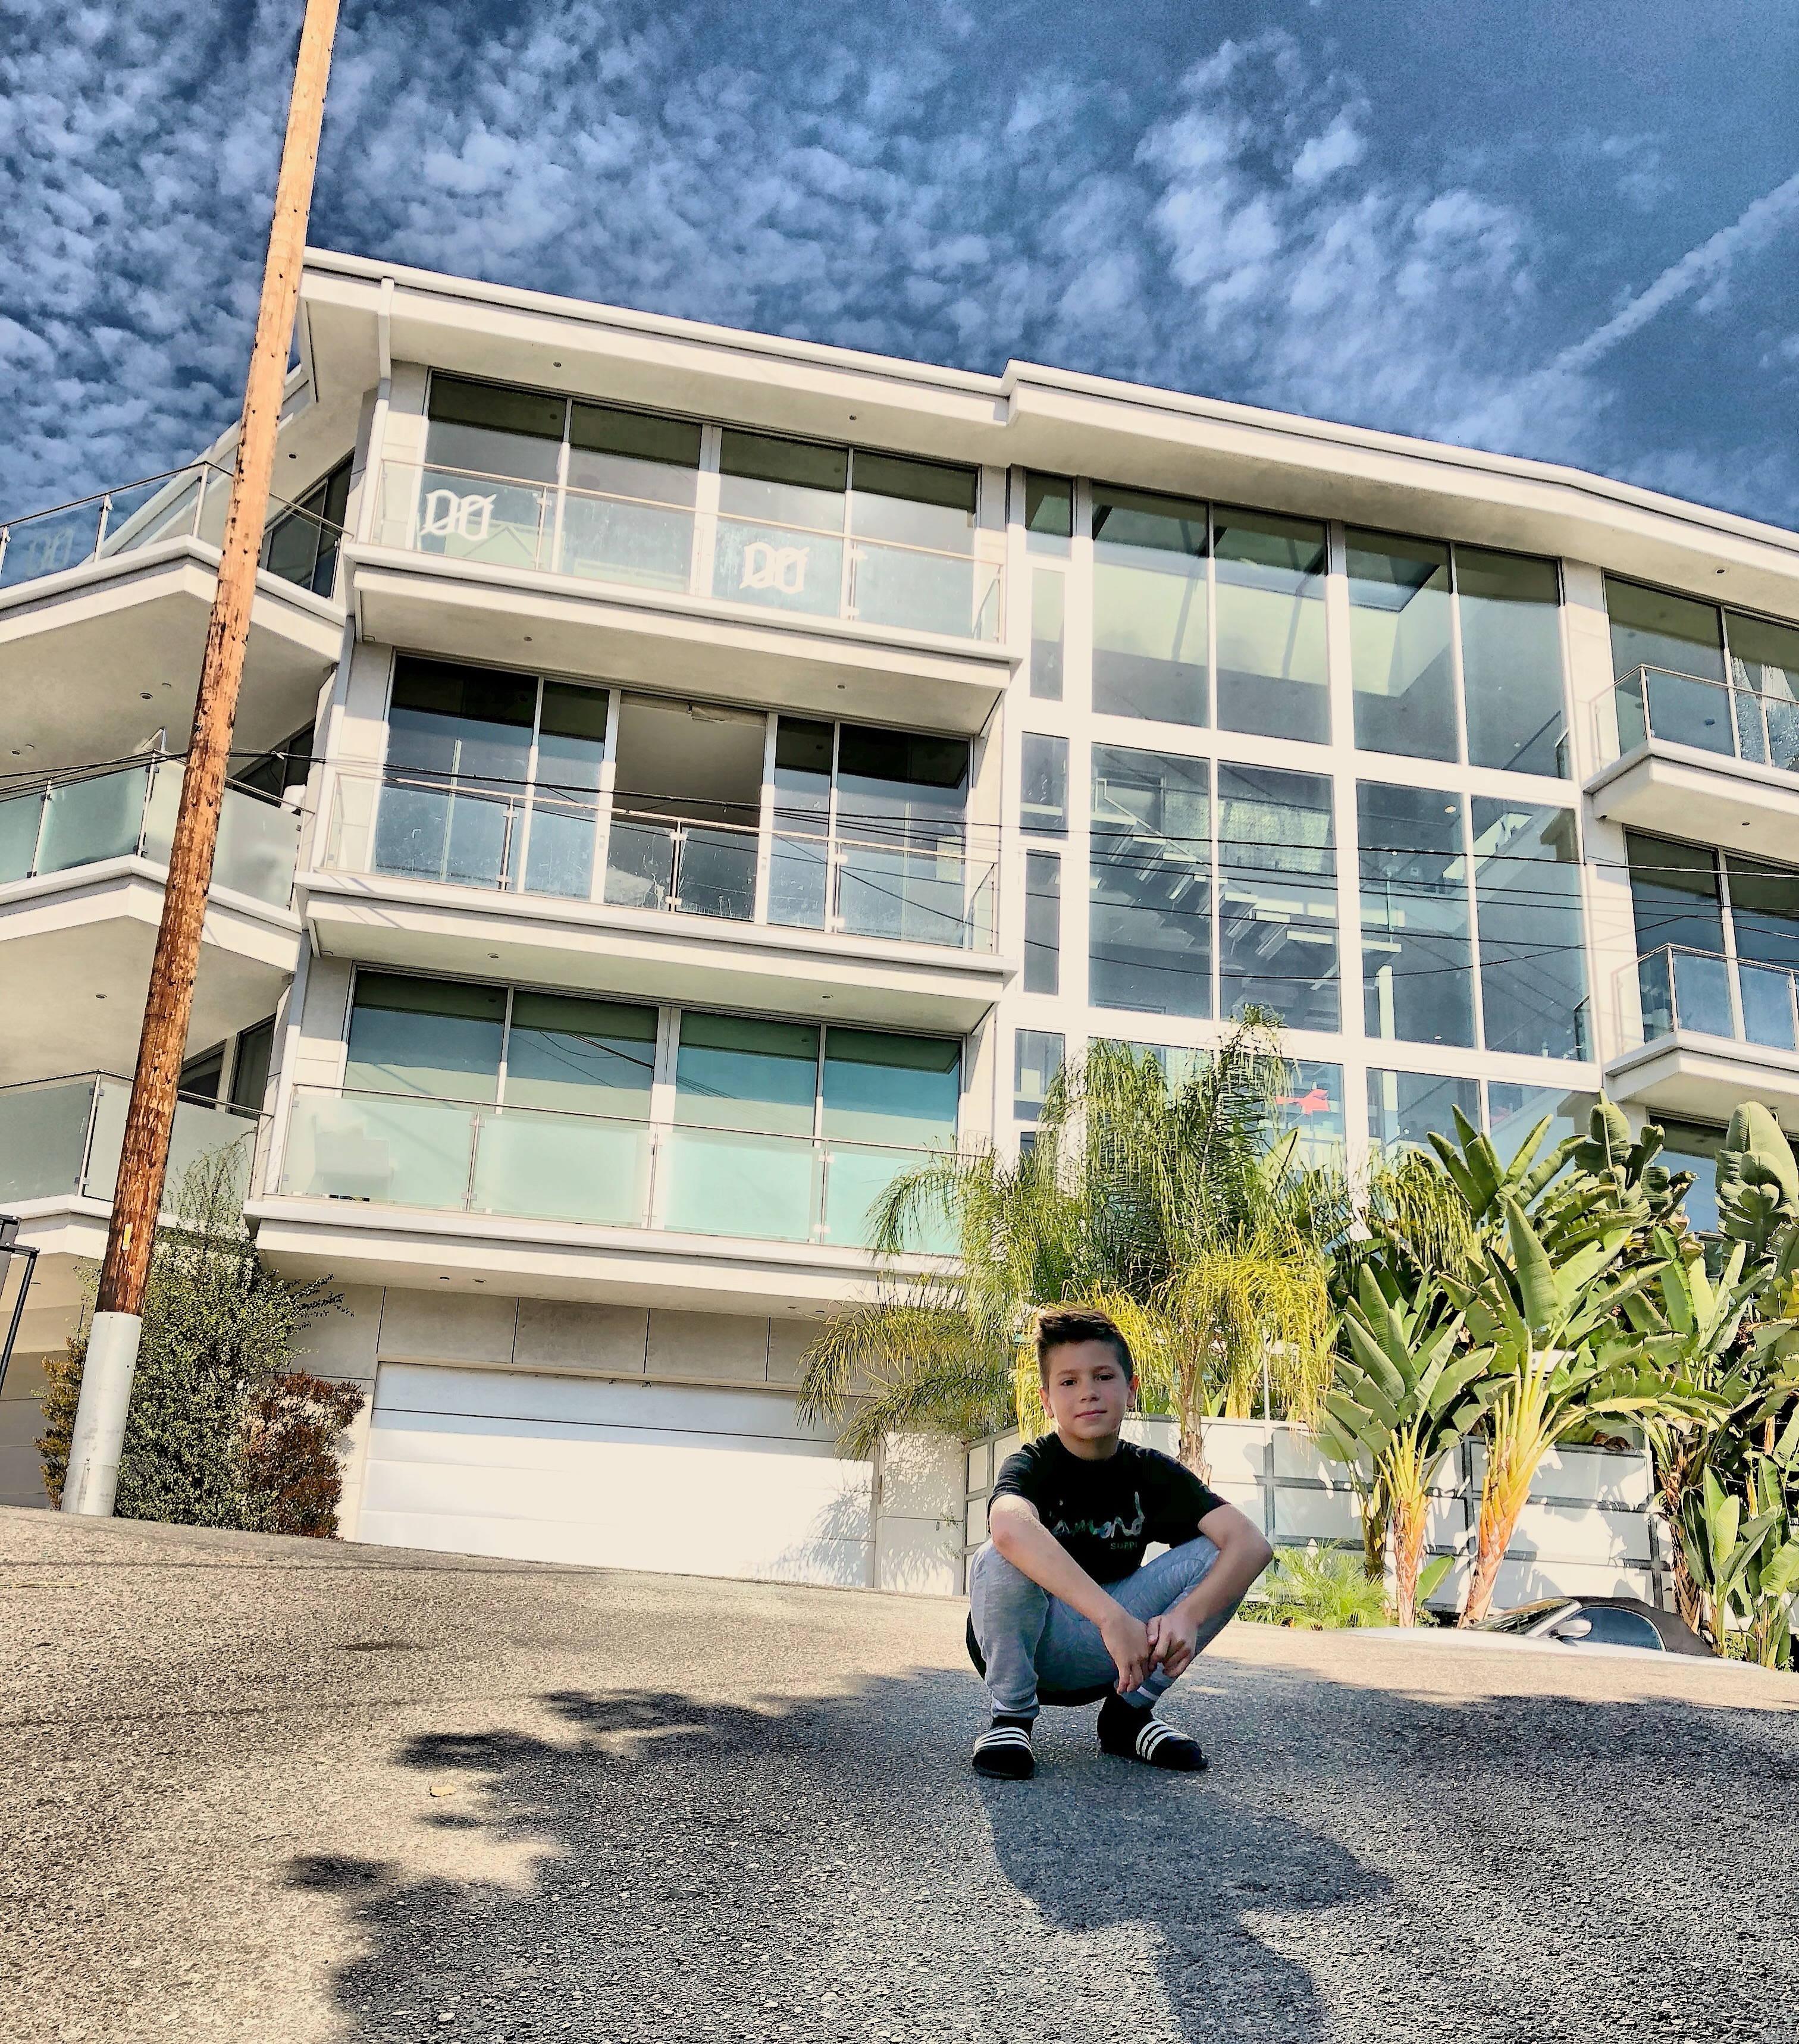 A boy in front of a Hollywood mansion